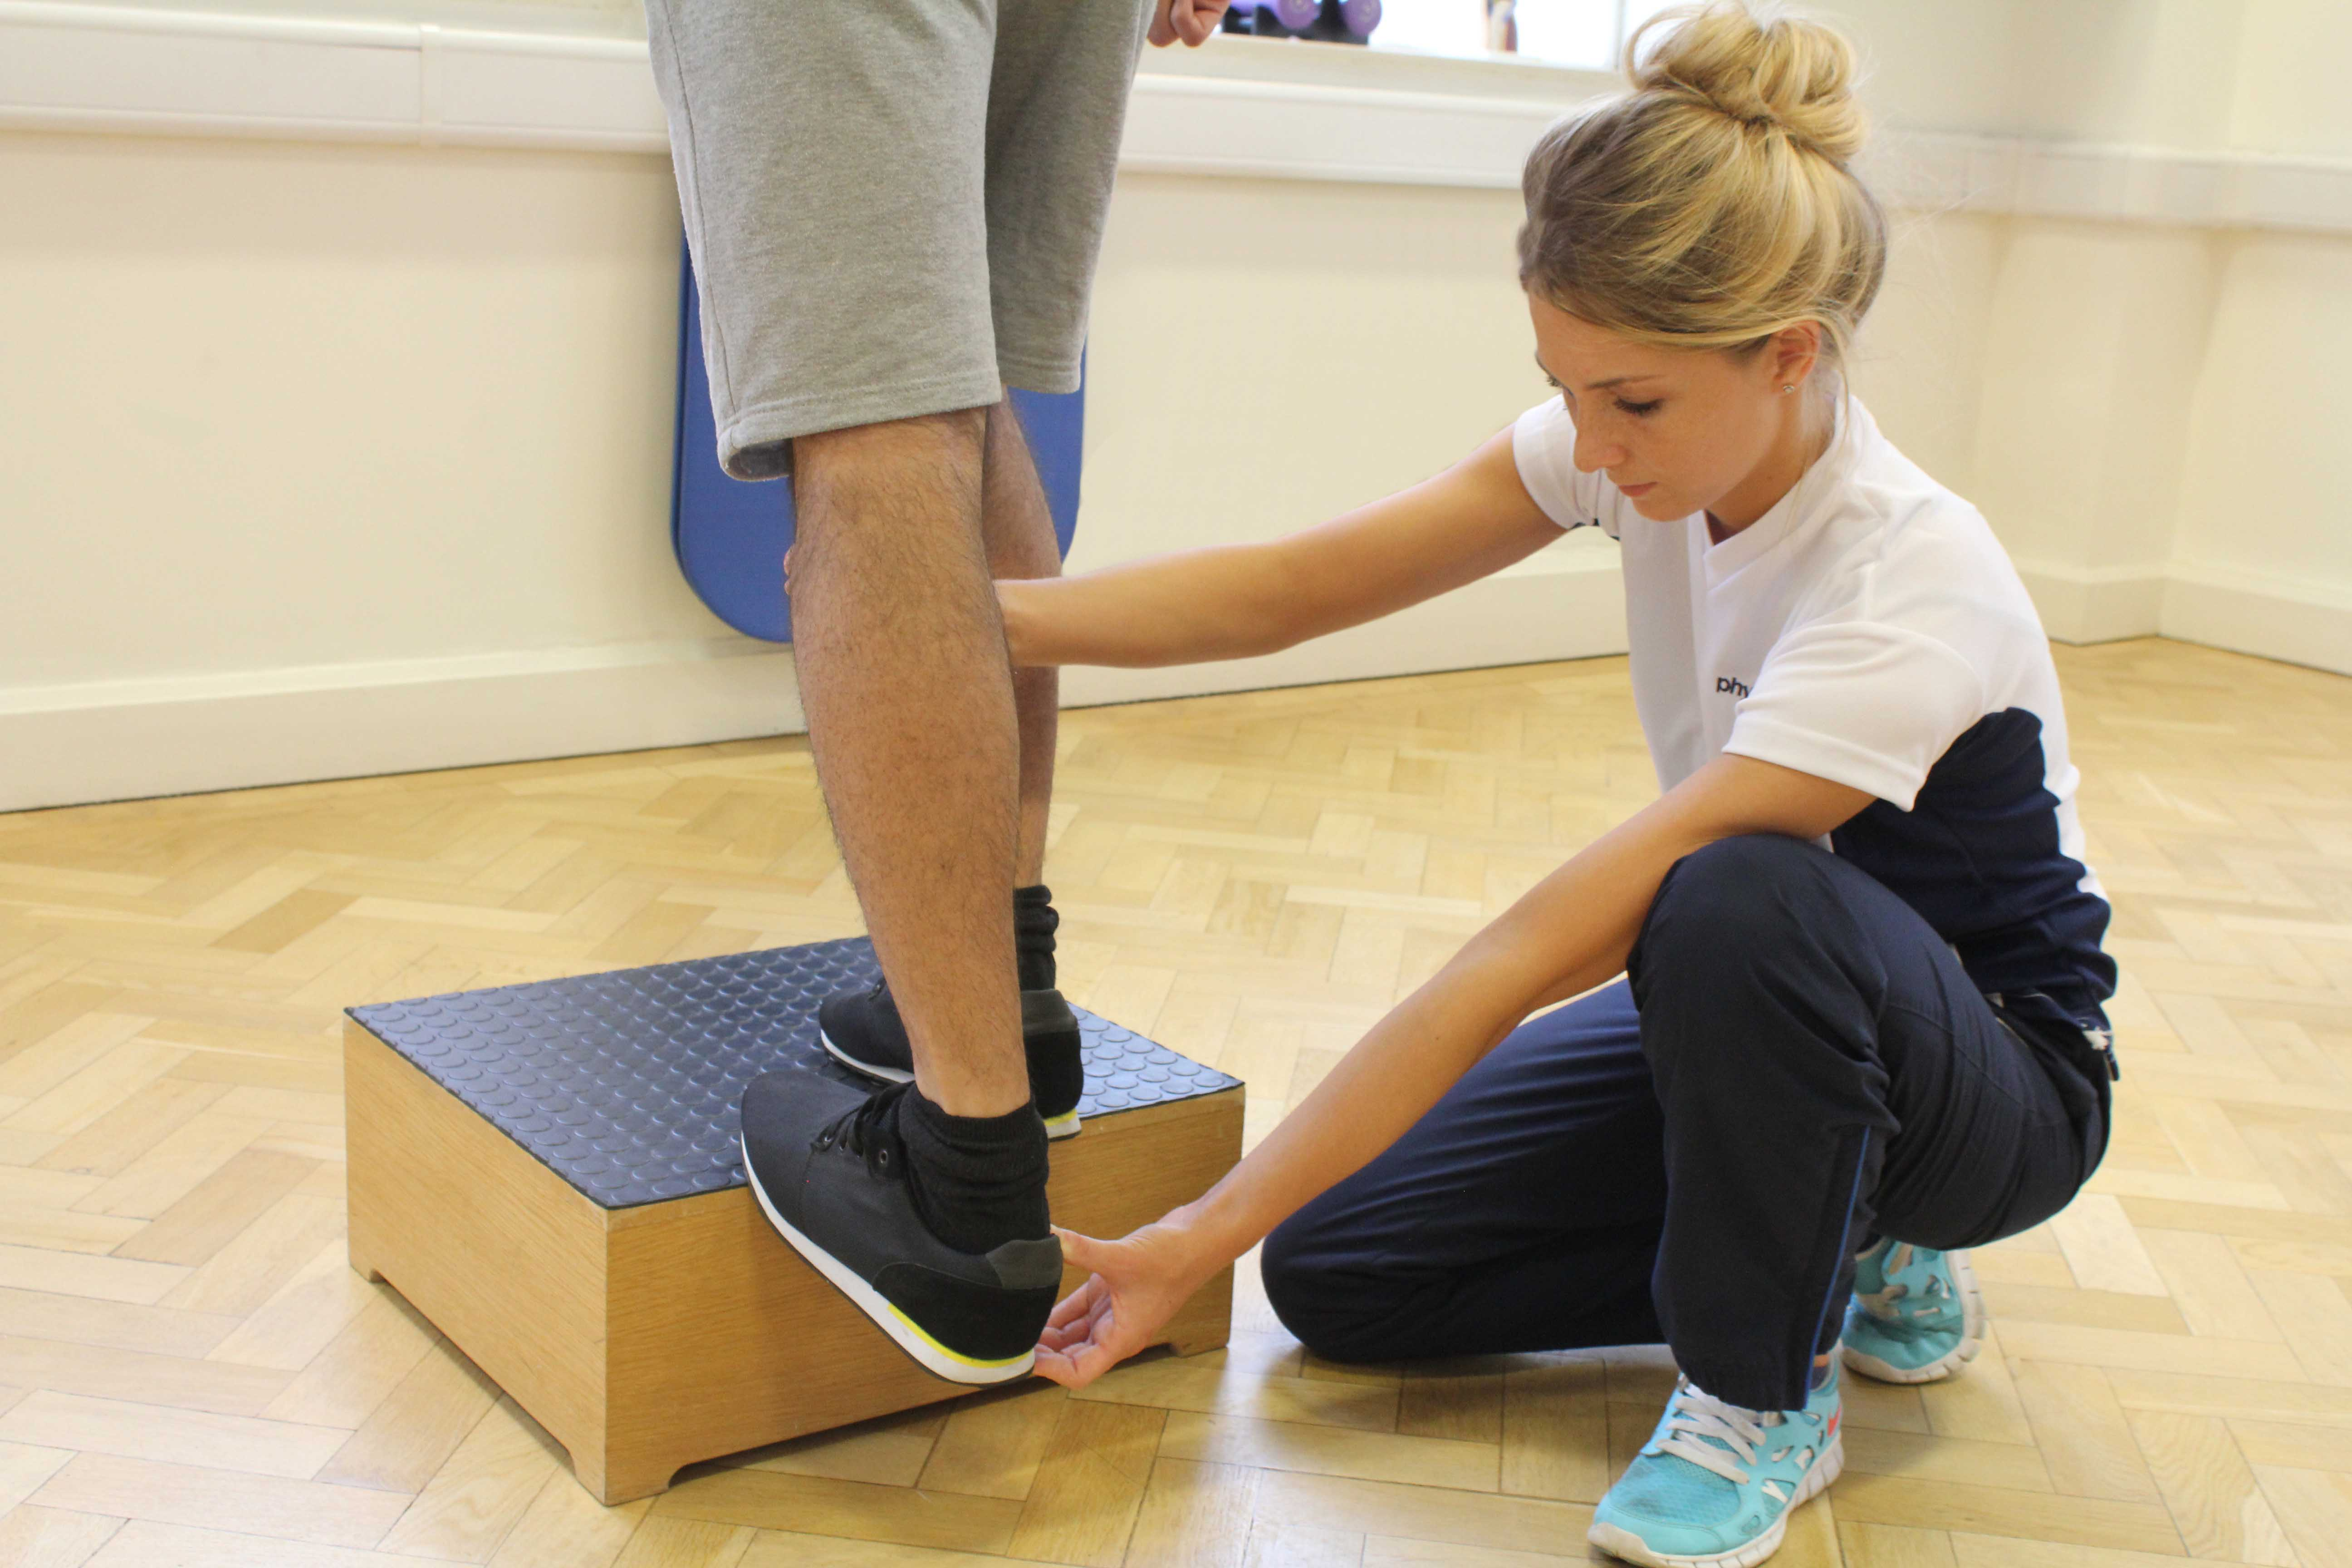 Progressive ankle strengthening exercises supervised by specialised therapist